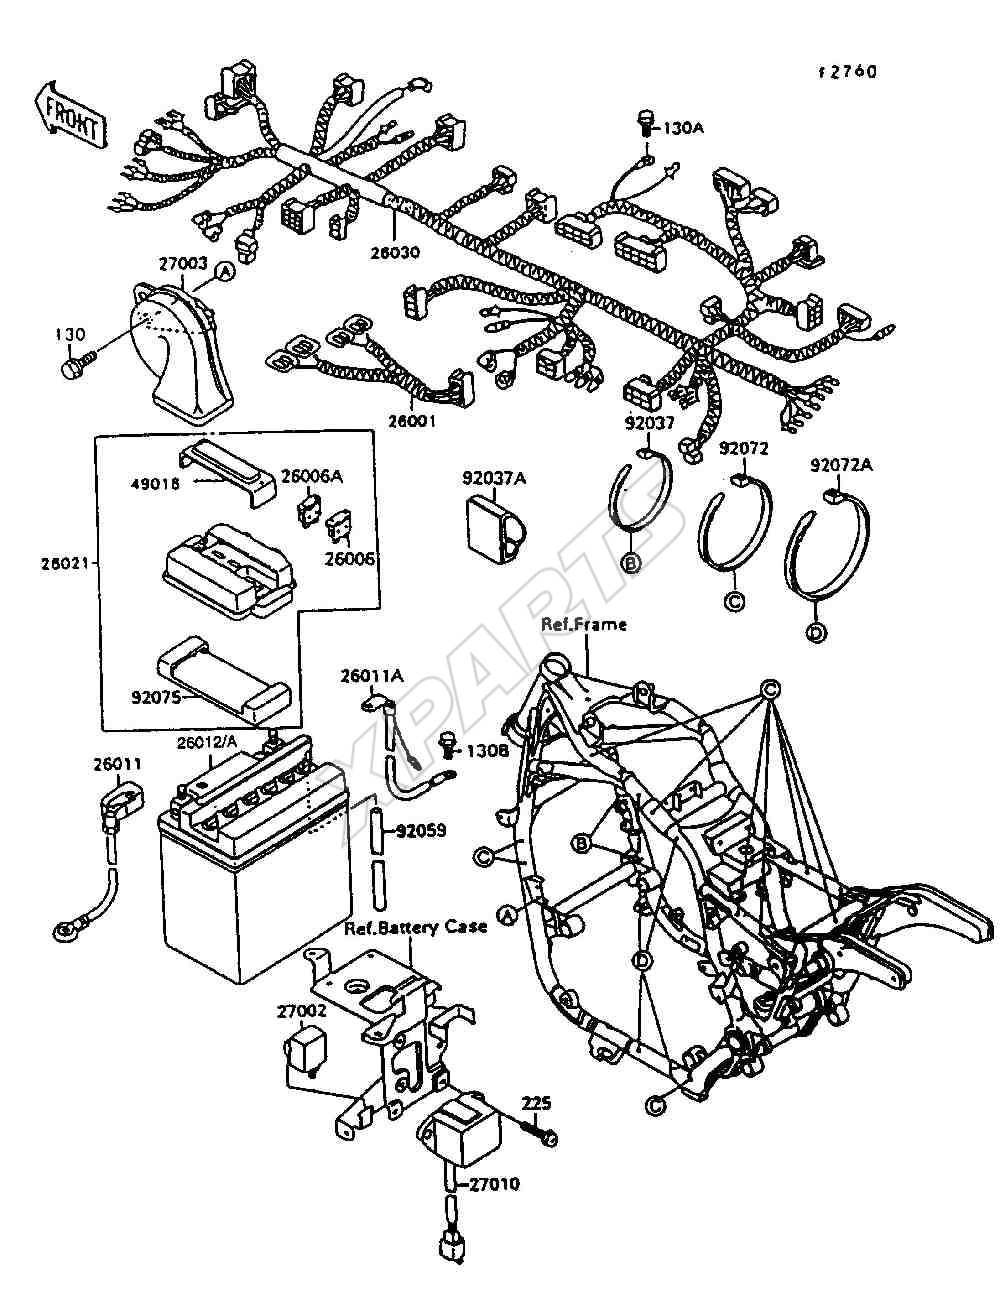 Kawasaki 1300 Wiring Diagram Explore On The Net 1986 Zl600a Schematic Voyager Xii Diagrams Z Mule